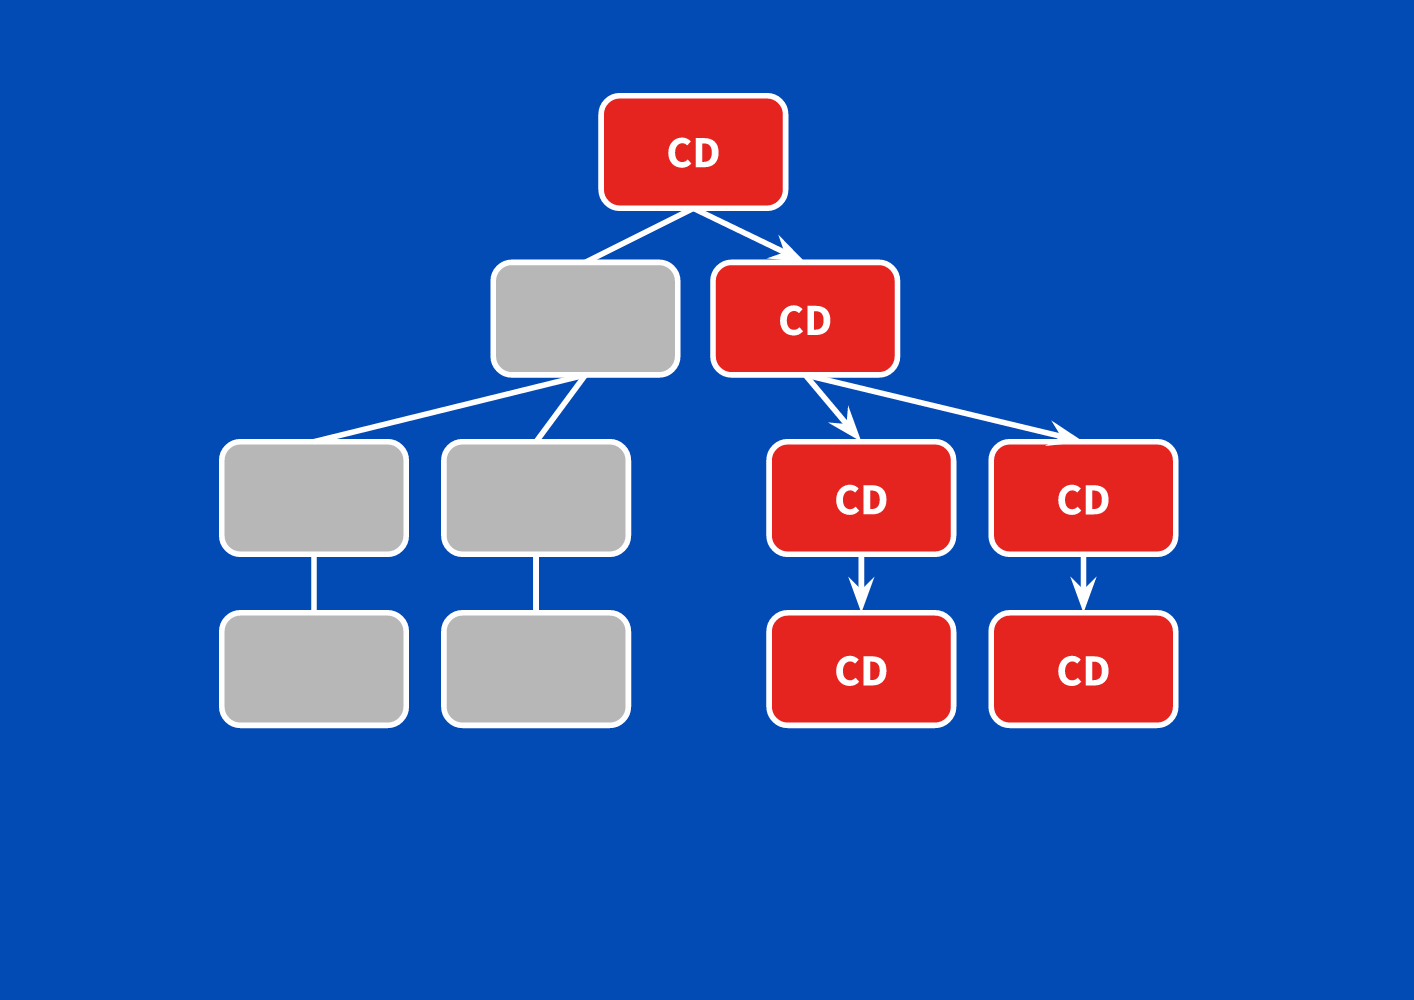 cd-tree-8.png